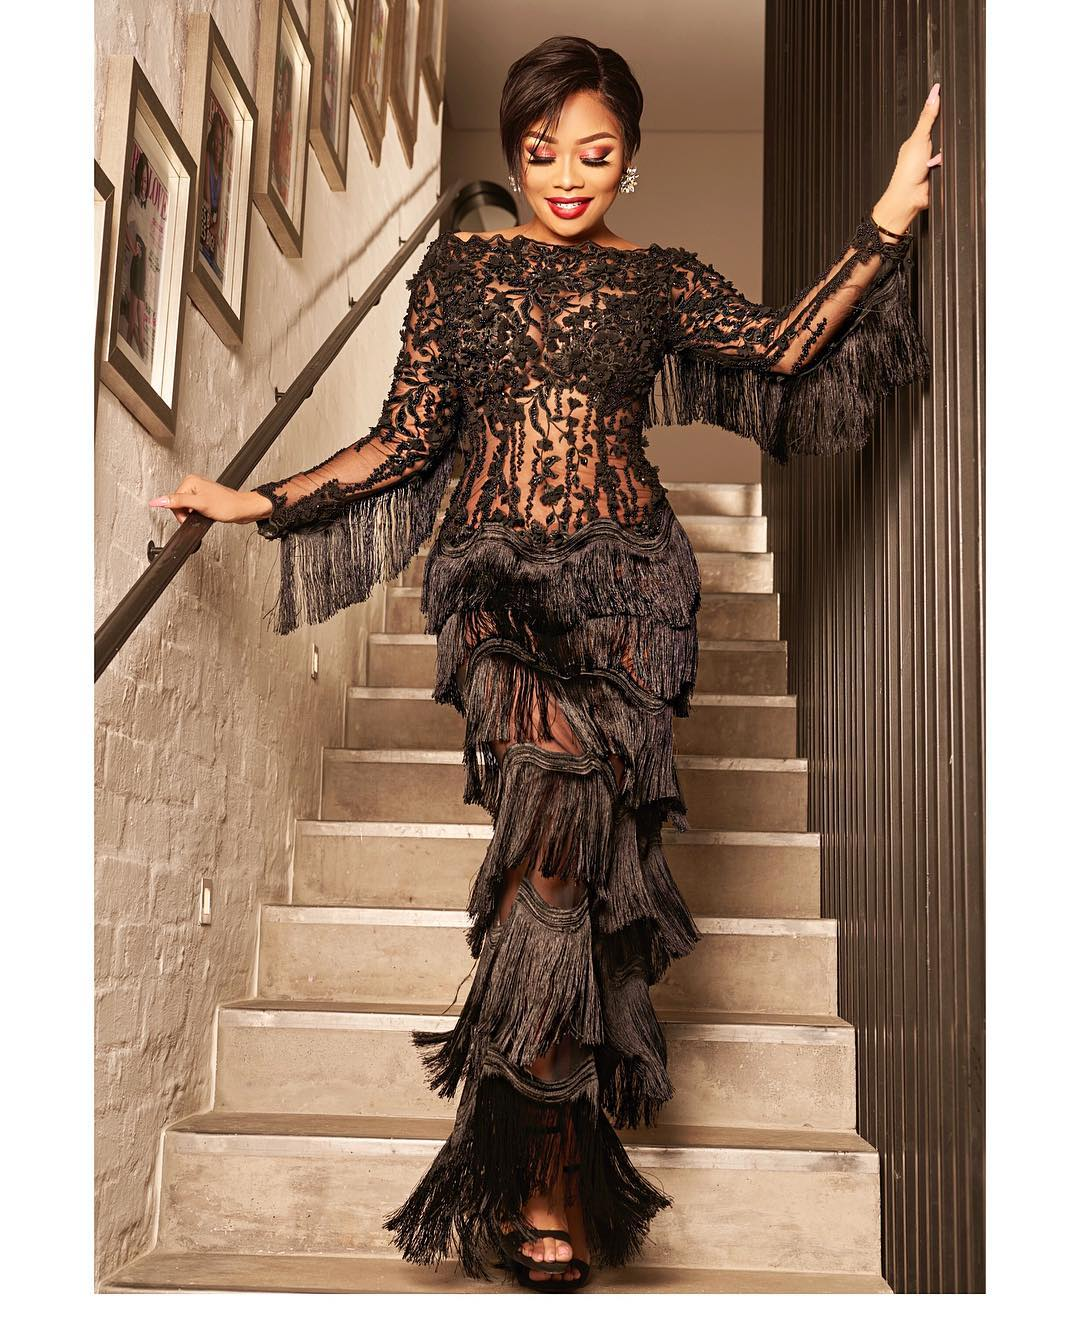 PHOTOS: Bonang Matheba Teases Her Male Fan With Bumstatic New Photos